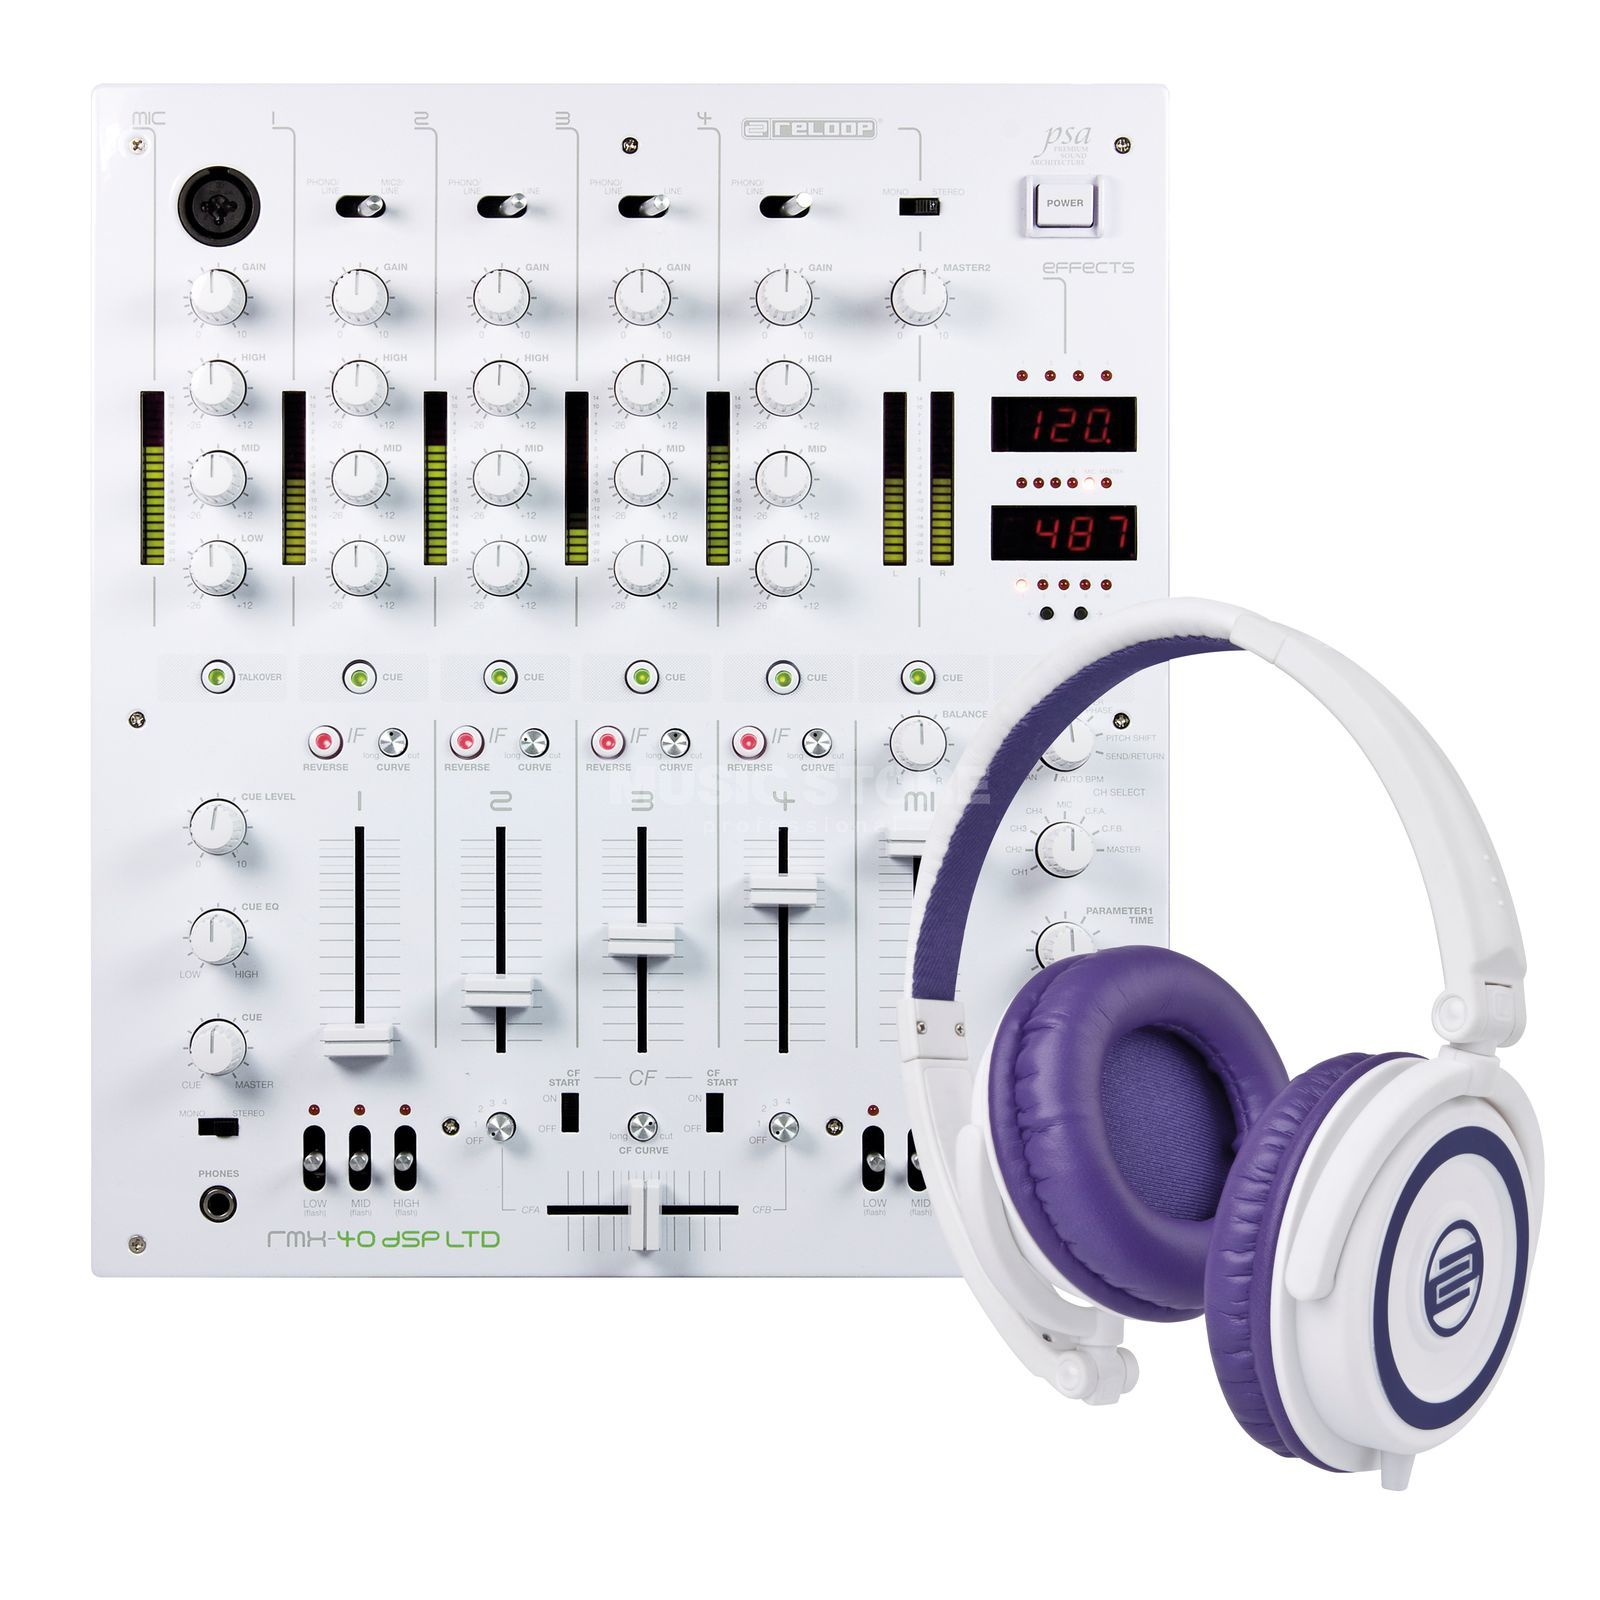 Reloop Sensational white RMX40 (RMX 40 DSP Ltd. incl. RHP-5) Productafbeelding